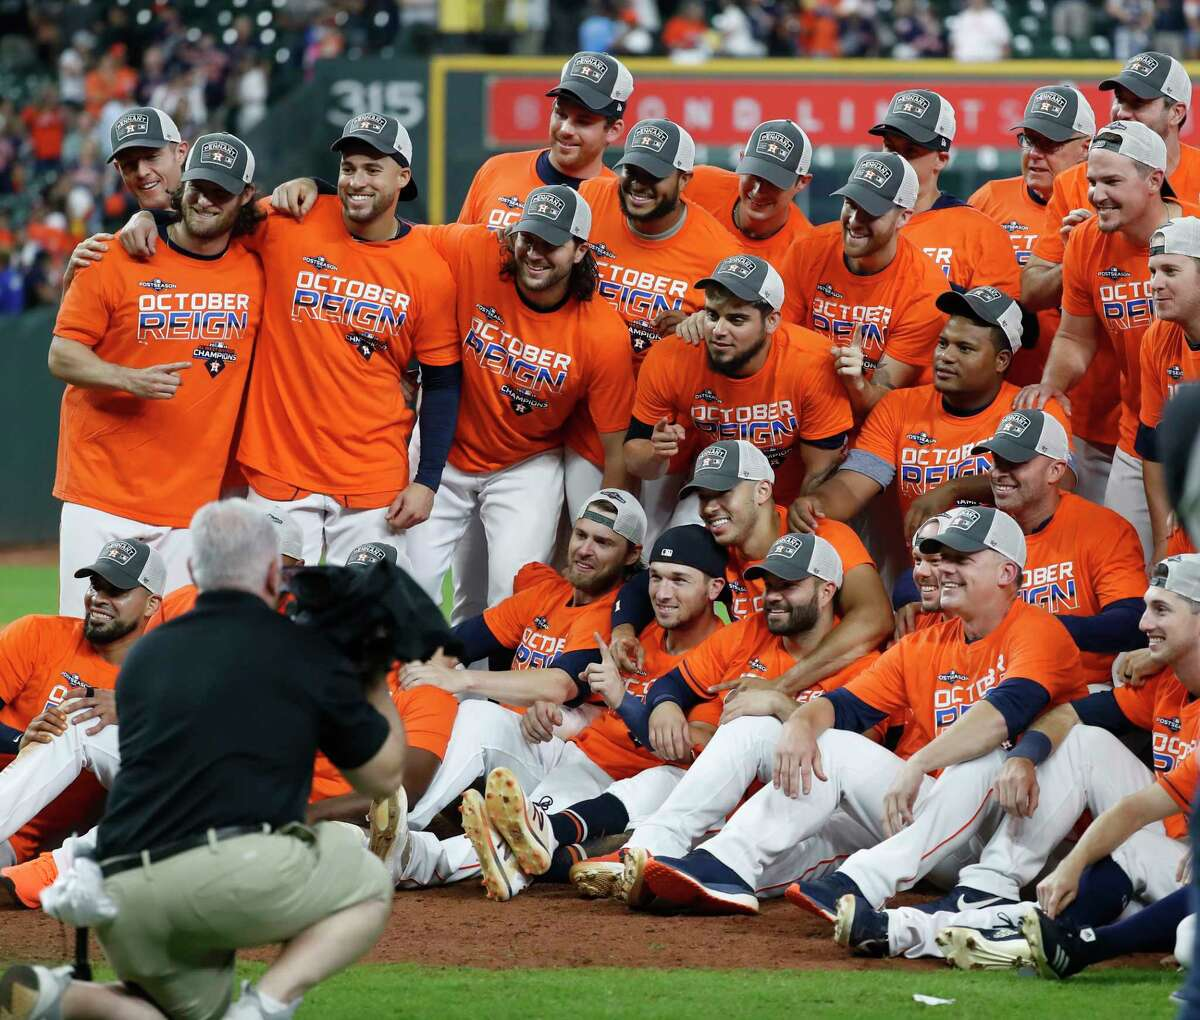 The Astros have three more legs to go on their quest for two World Series championships in three seasons.